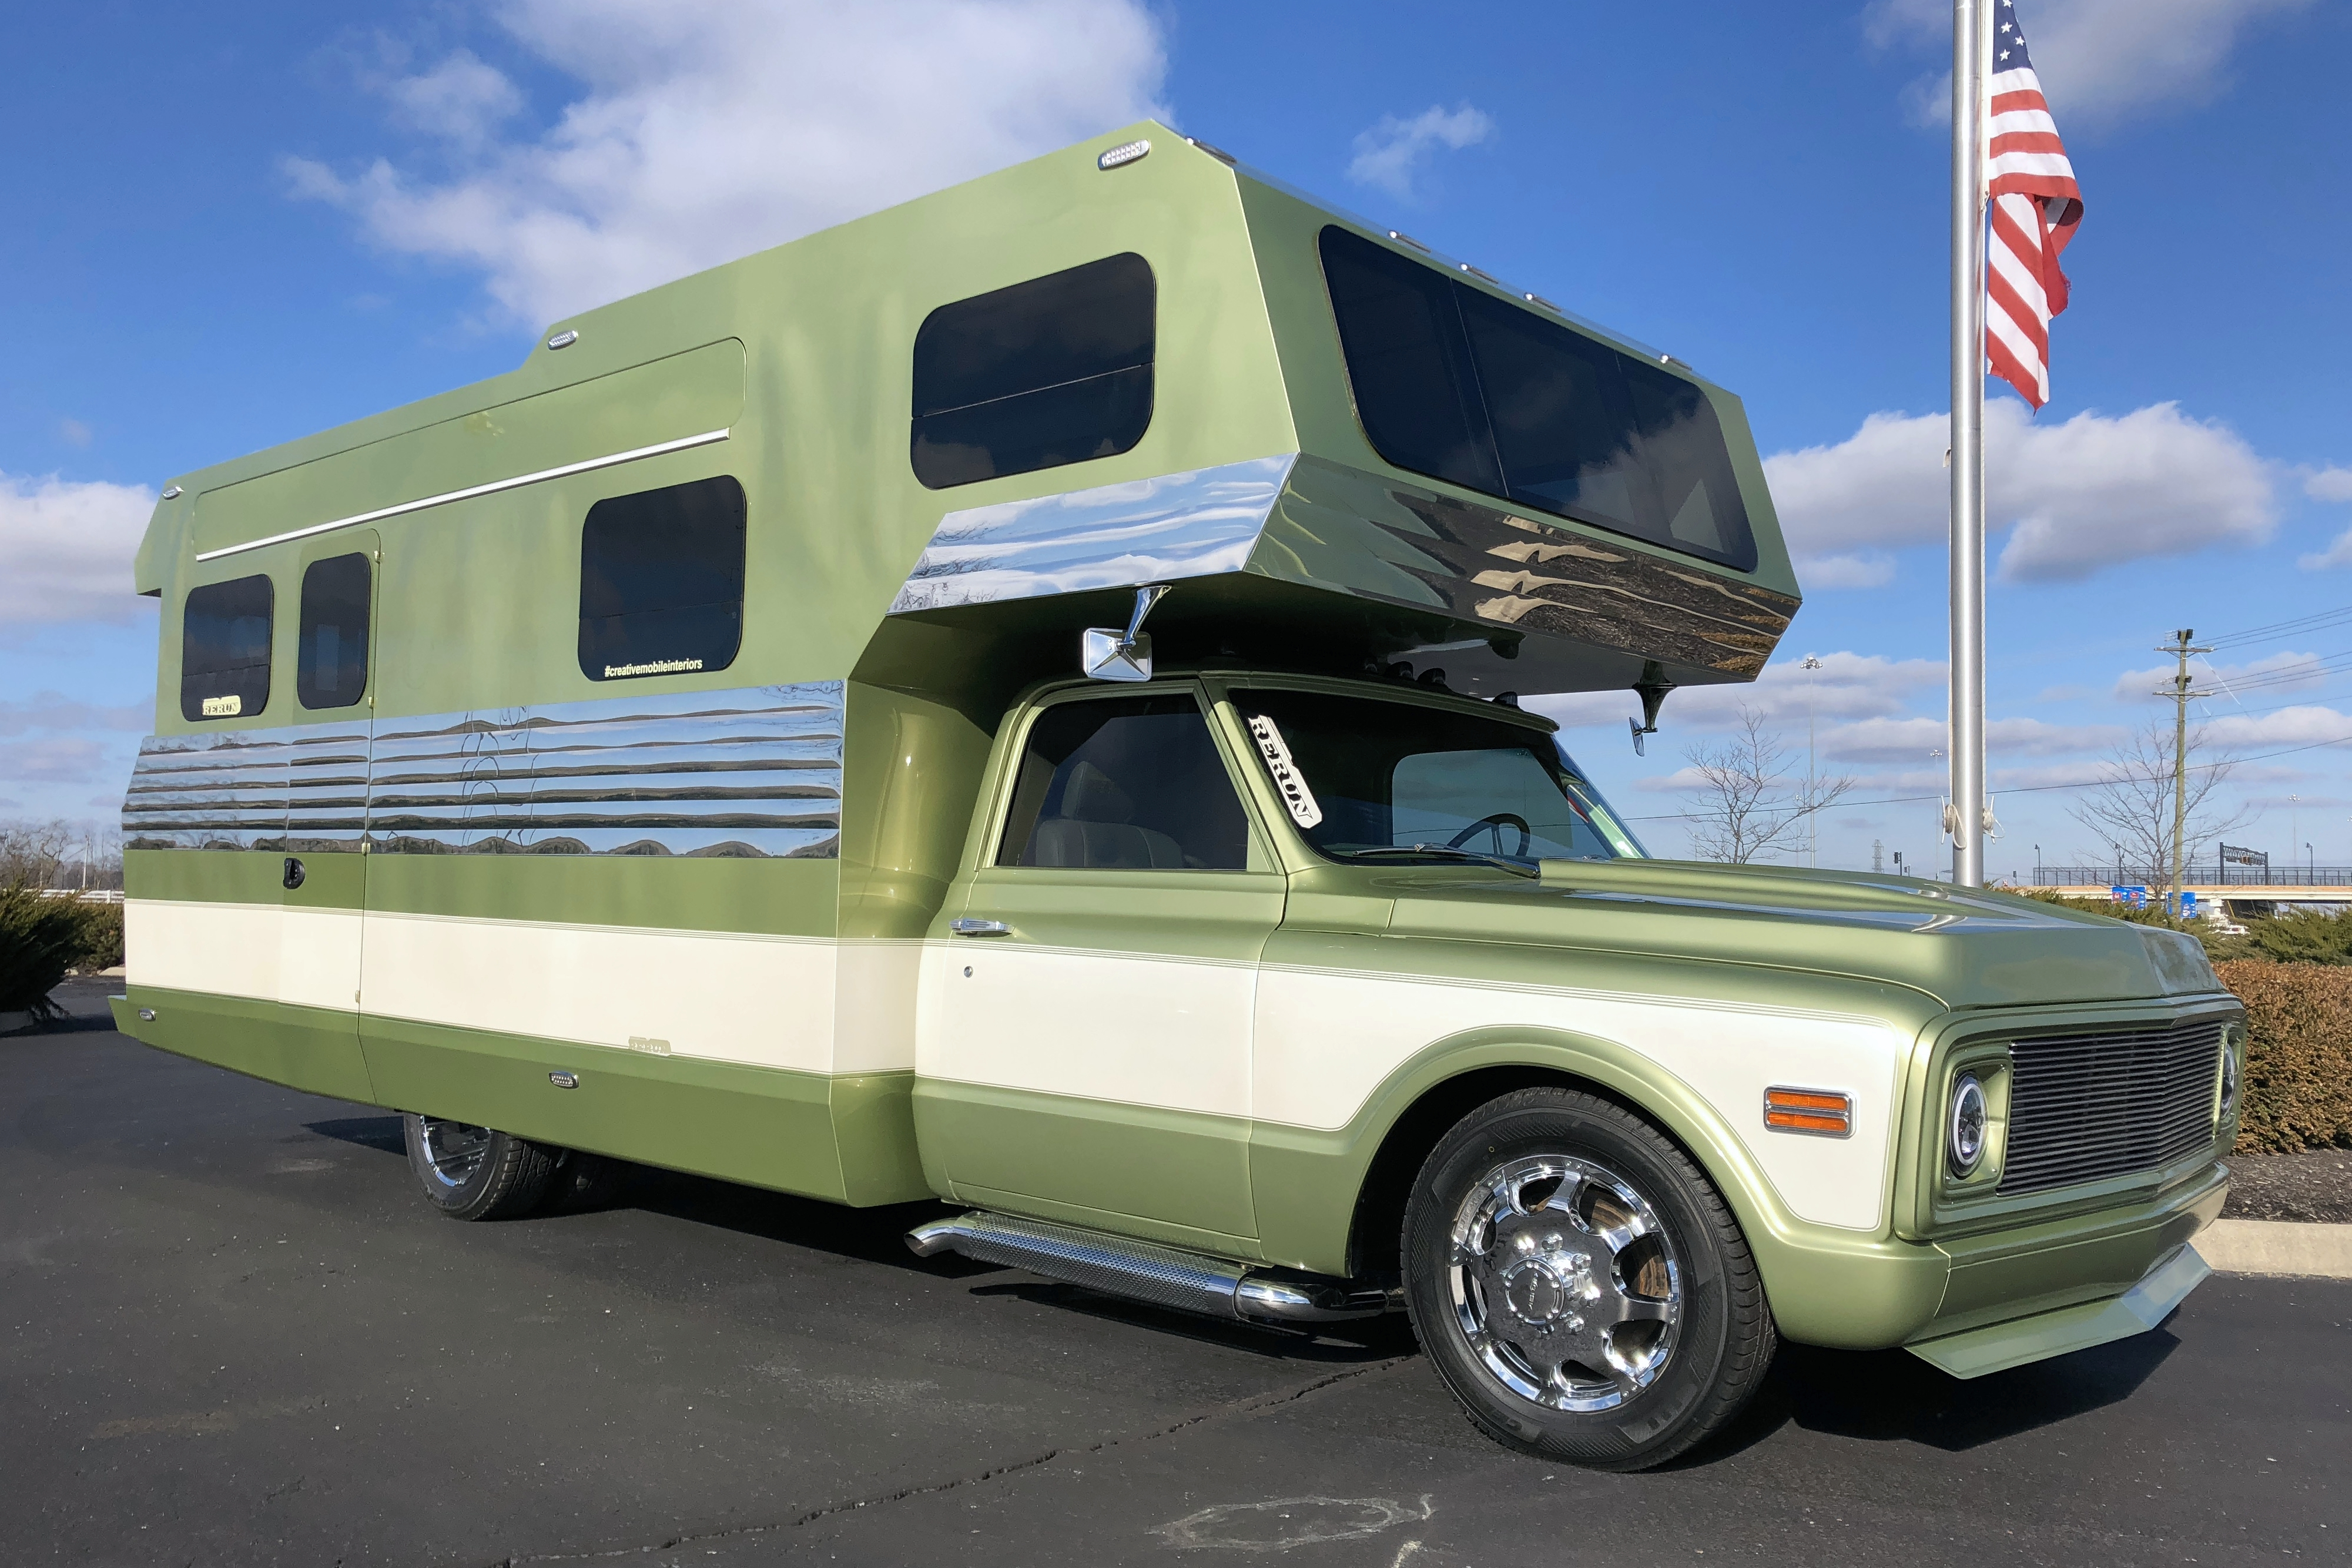 An avocado-colored vintage camper has an over-the-cab sleeping area, cream trim, and a sleek silver plated stripe down the center.